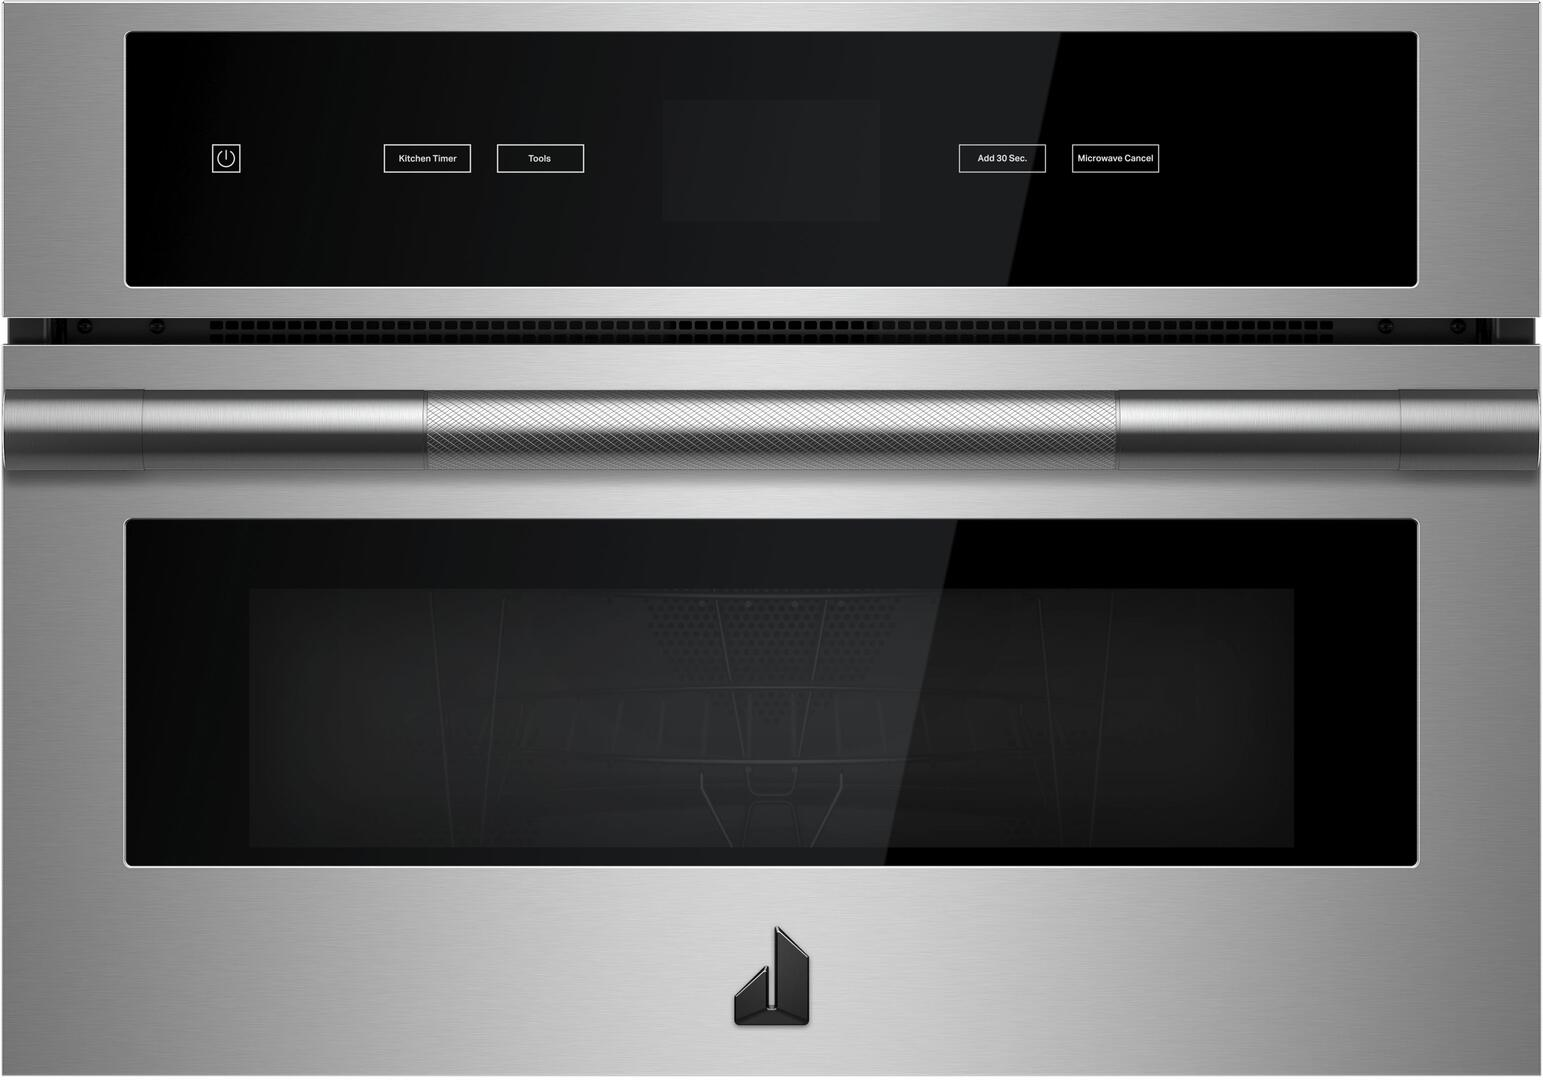 Jenn Air Microwave >> Jenn Air Jmc2427il Rise Series 27 Inch Stainless Steel Built In 1 4 Cu Ft Capacity Microwave Oven